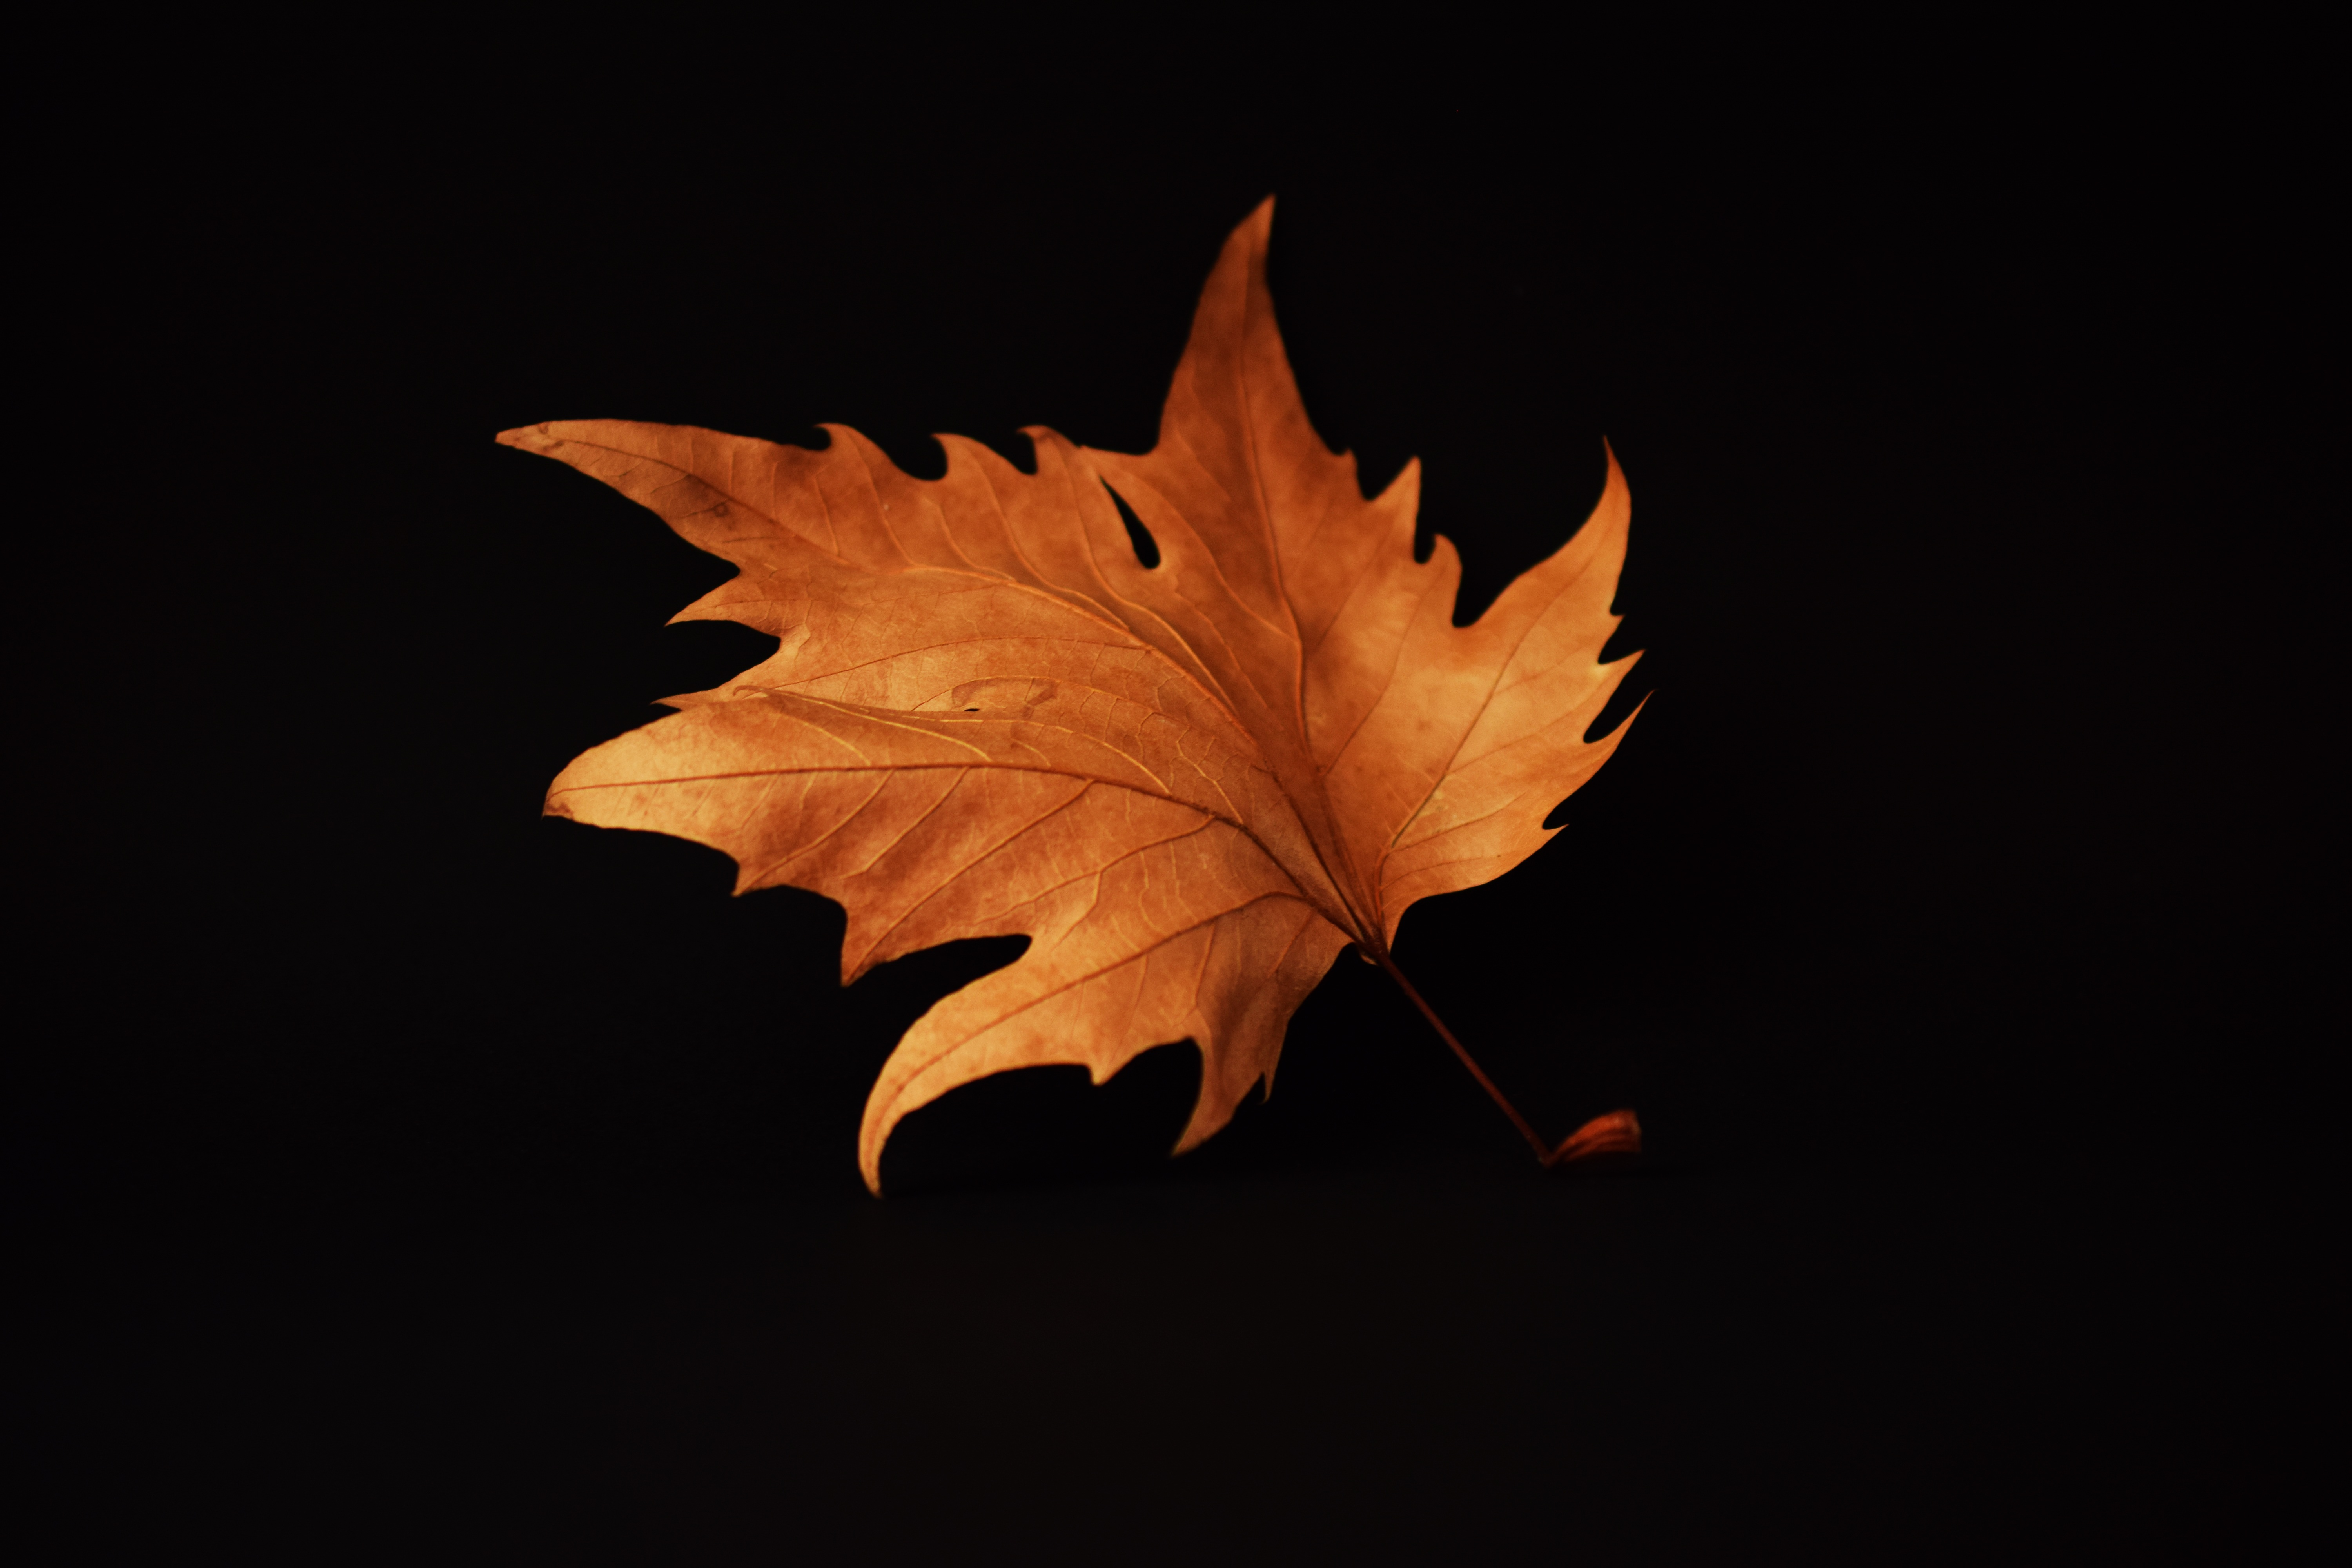 Autumn Leaf Black Background